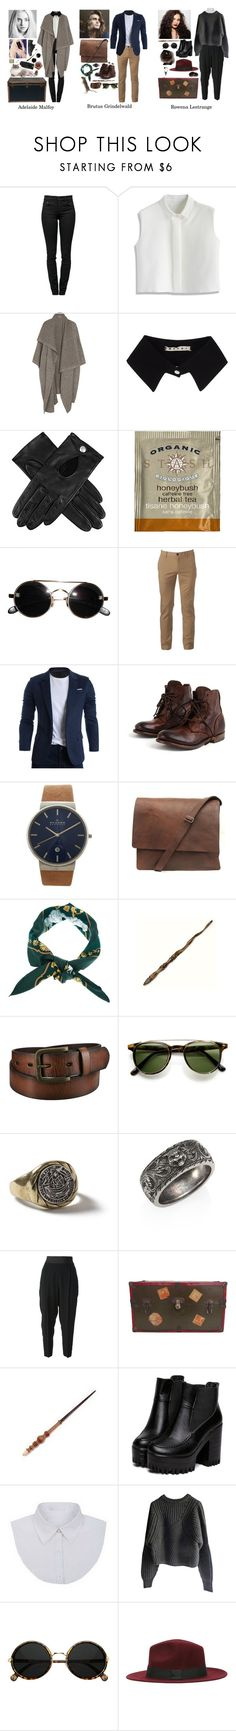 """""""Hogwarts New Generation OCs"""" by mermer1324 ❤ liked on Polyvore featuring Proenza Schouler, Chicwish, STELLA McCARTNEY, Marni, Dents, Urban Pipeline, Skagen, Hermès, Ash and Uniqlo"""